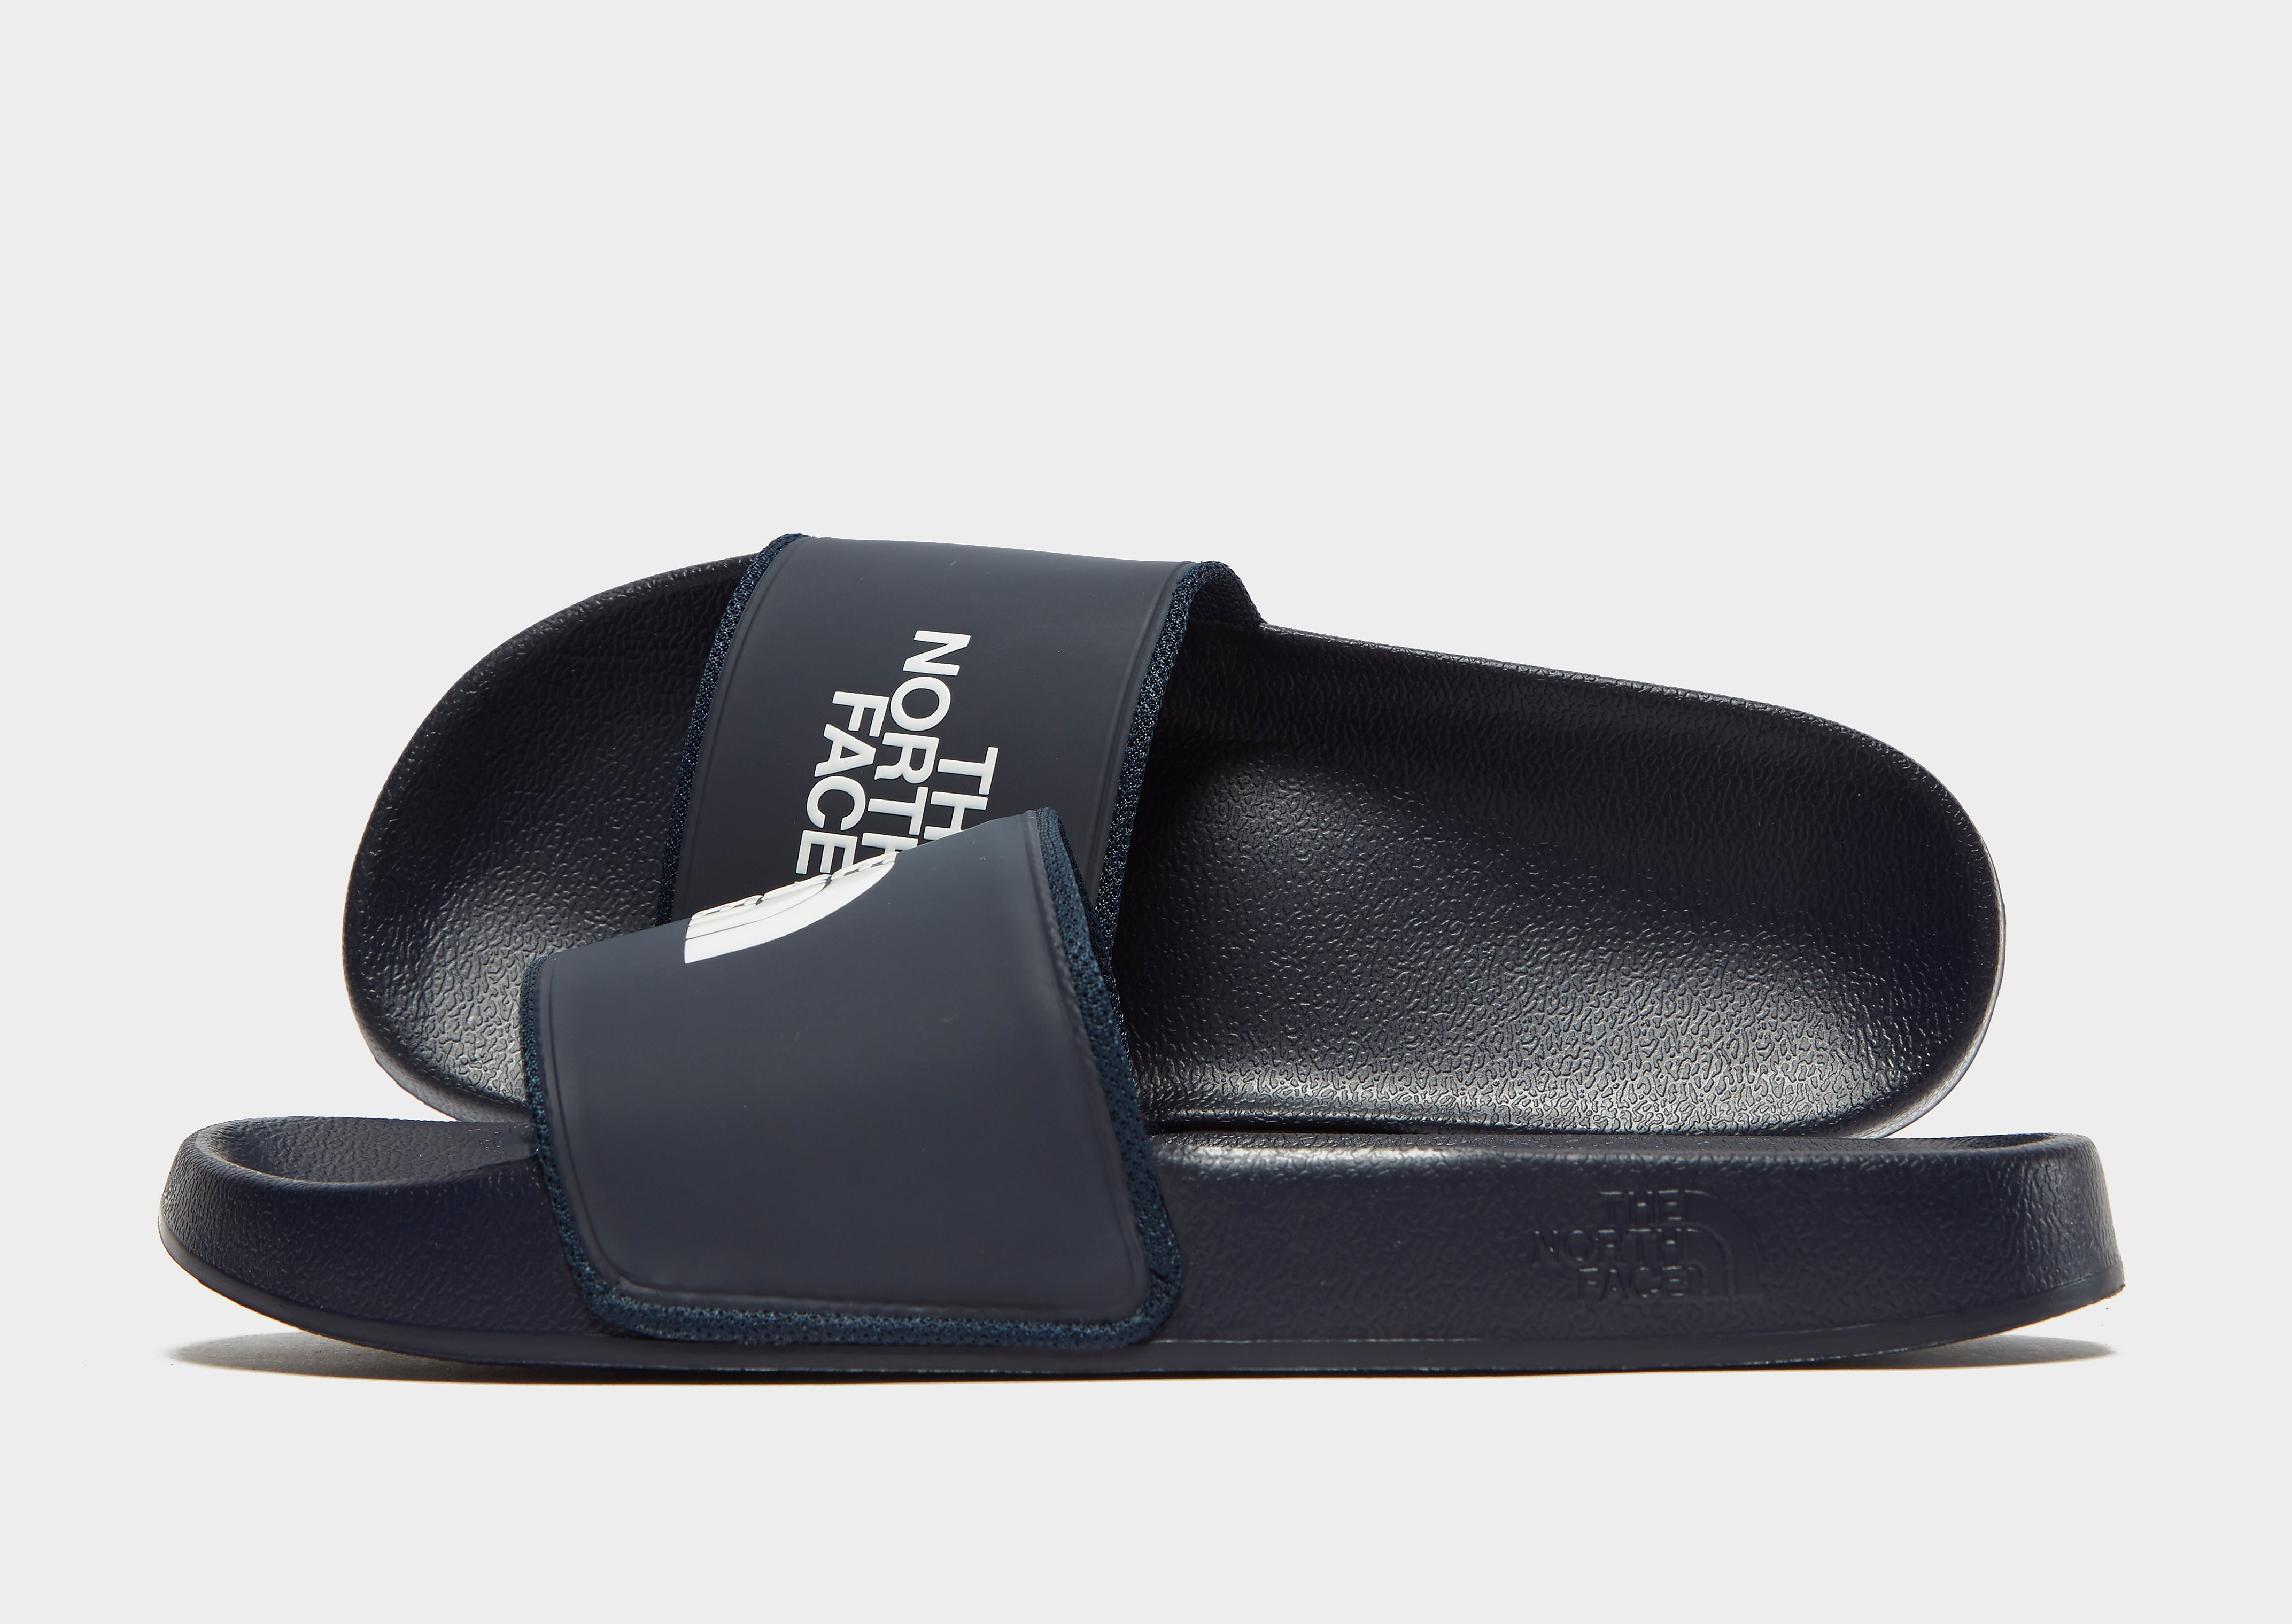 The North Face chanclas